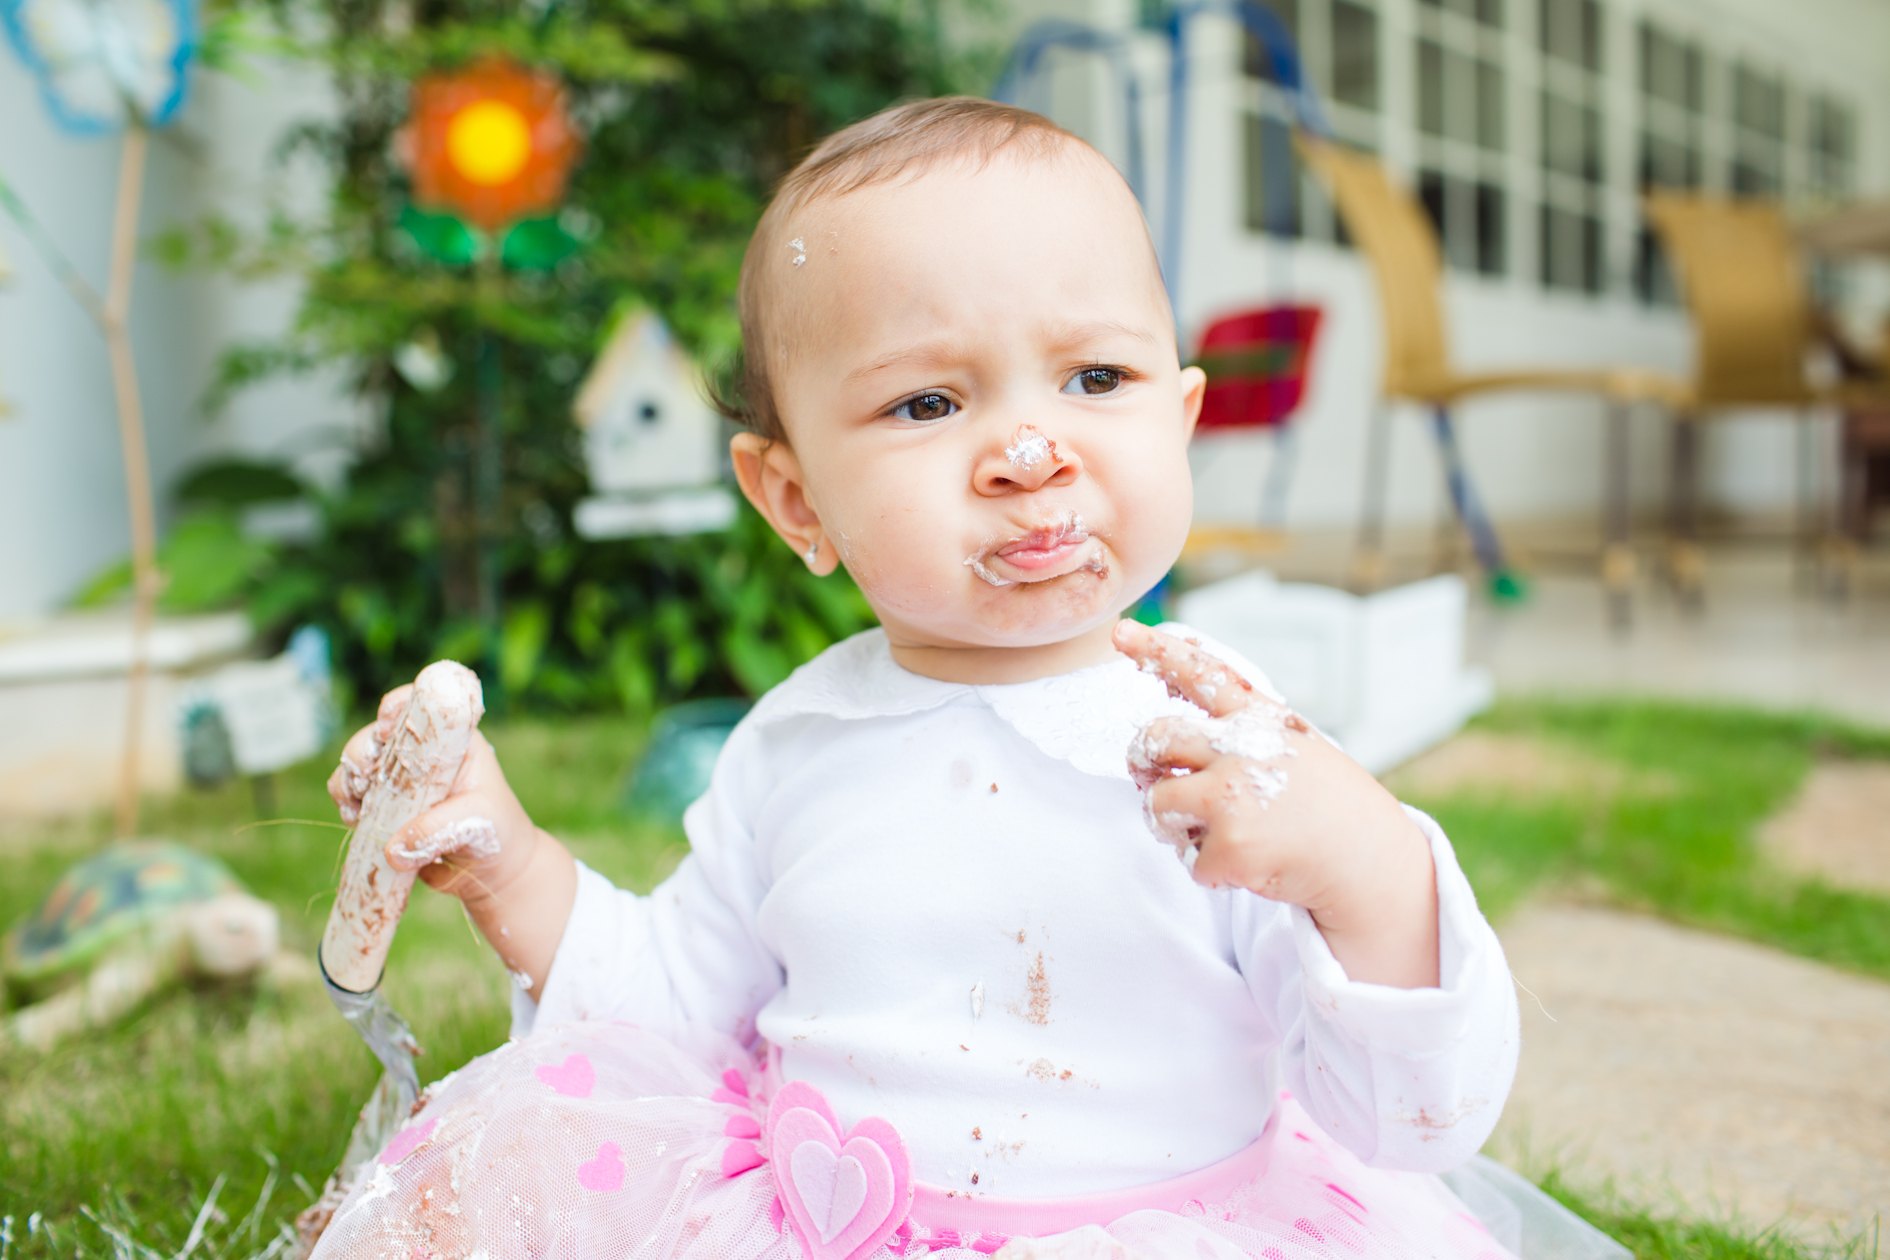 Laura_smash the cake-16- KS1A3394.jpg